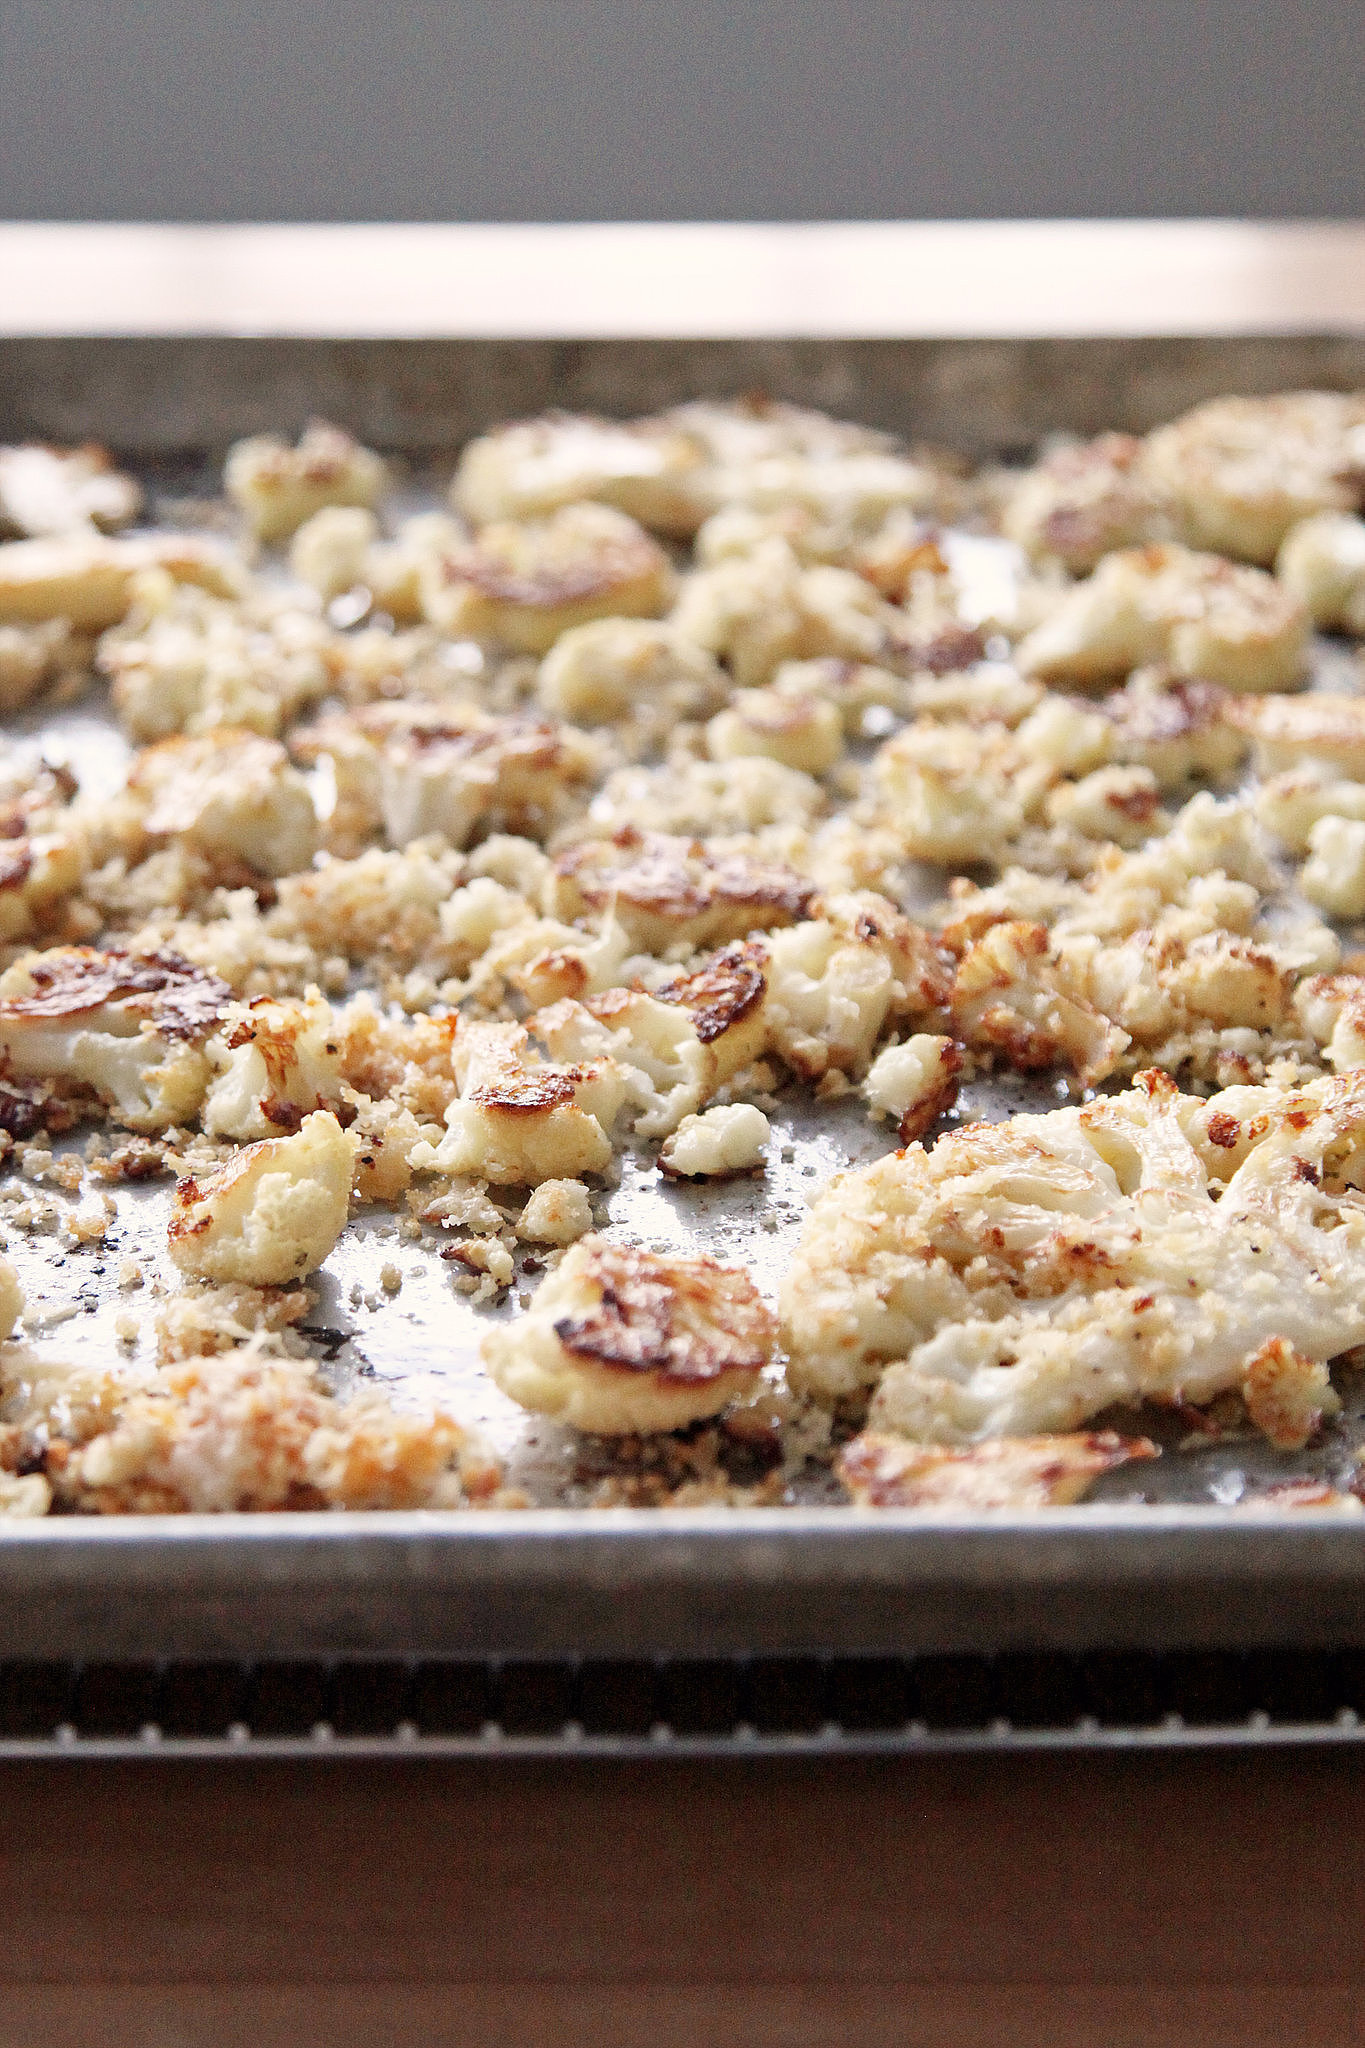 Ina Garten's Easy Cauliflower Side Is Just as Tasty as You Imagine